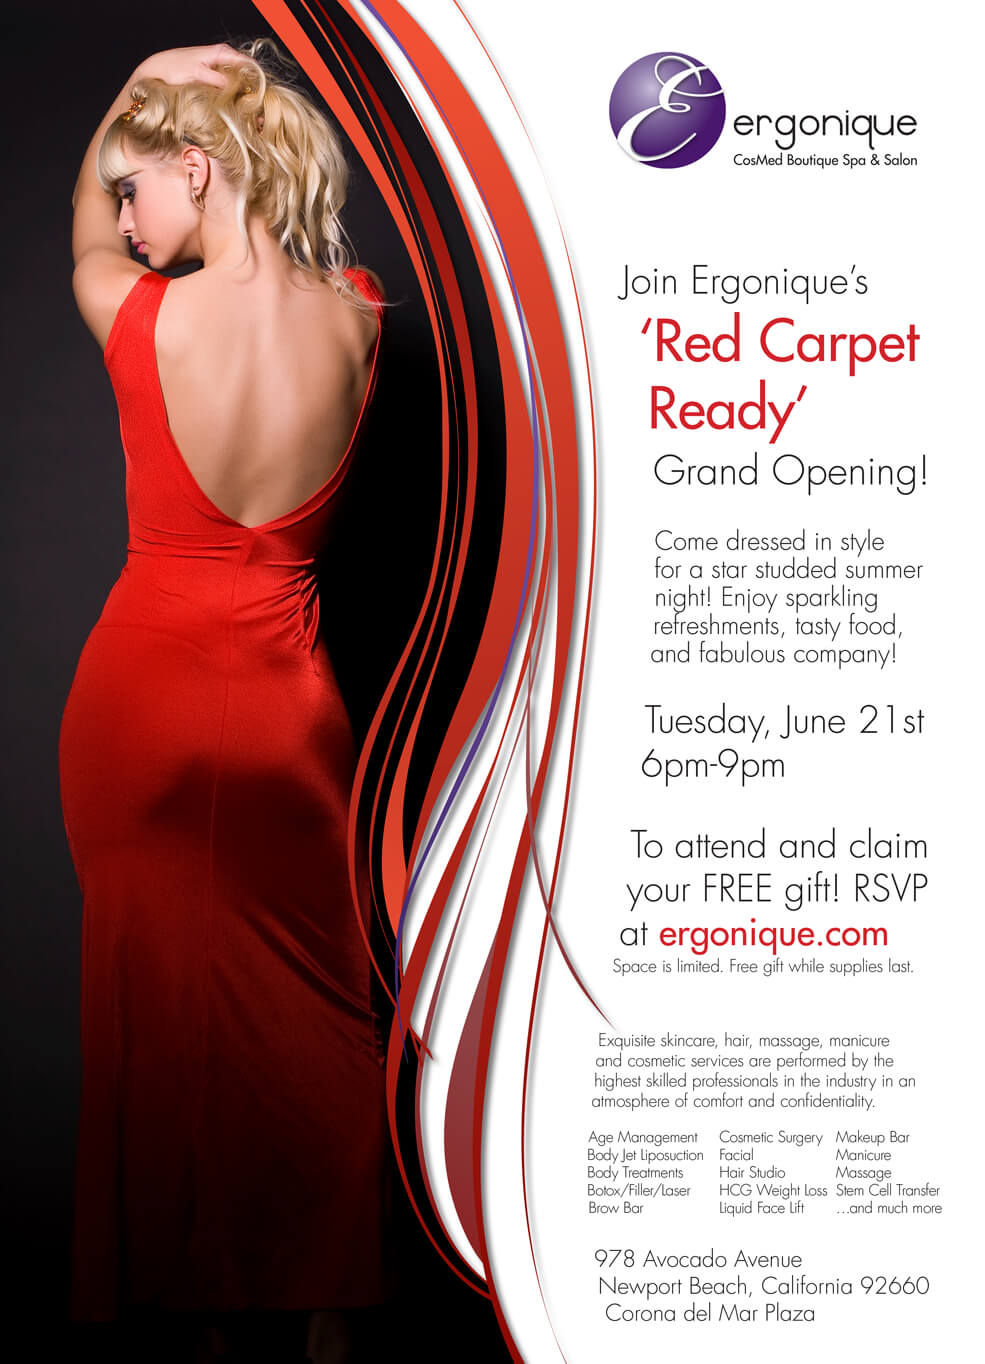 Ergonique Print Ad - Red Carpet Ready